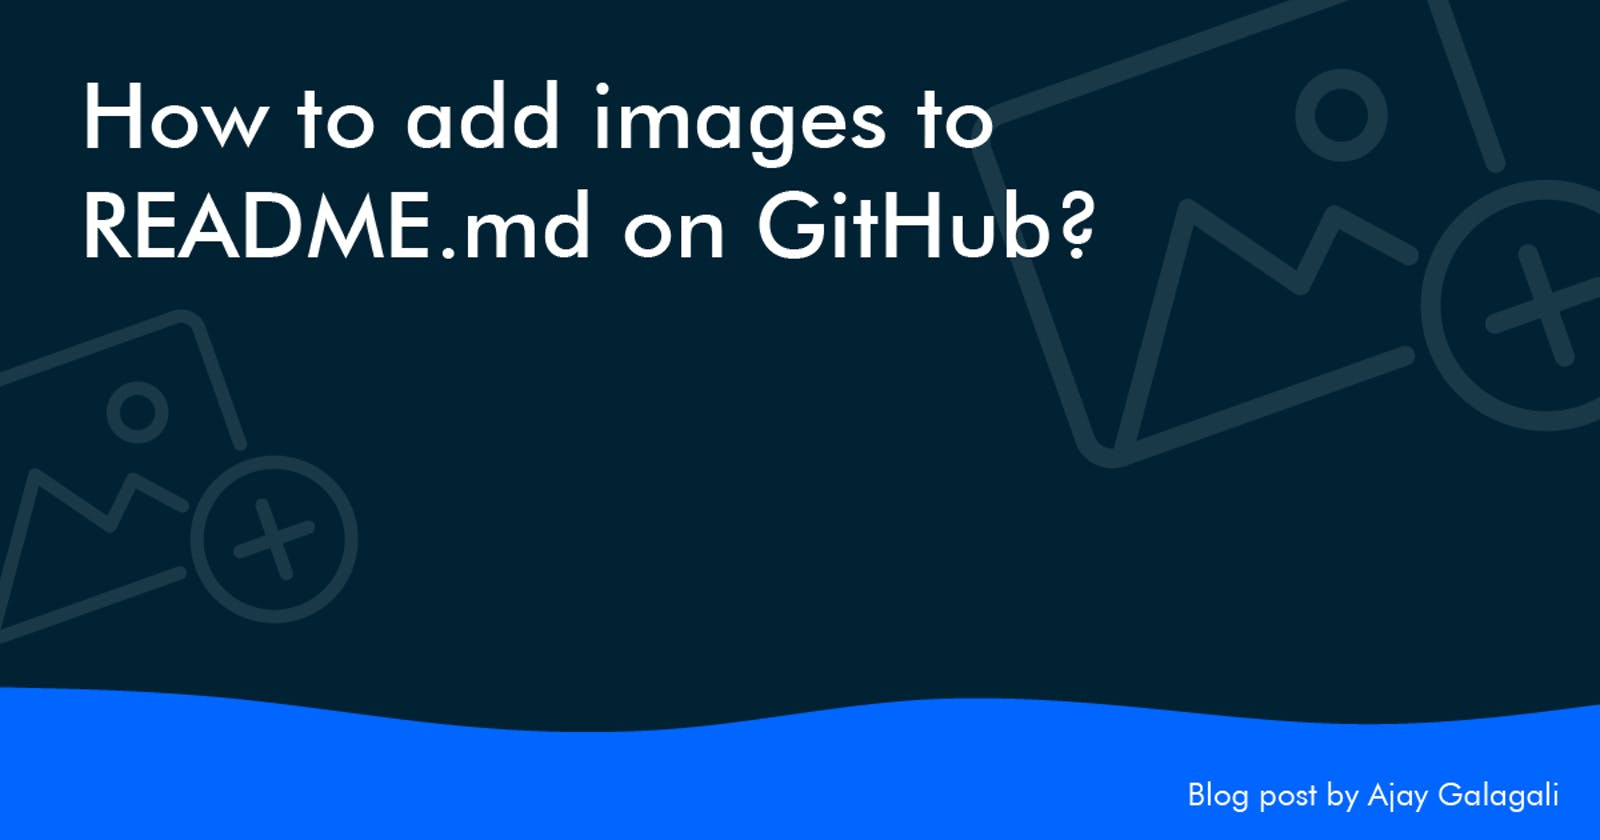 How to add images to README.md on GitHub?